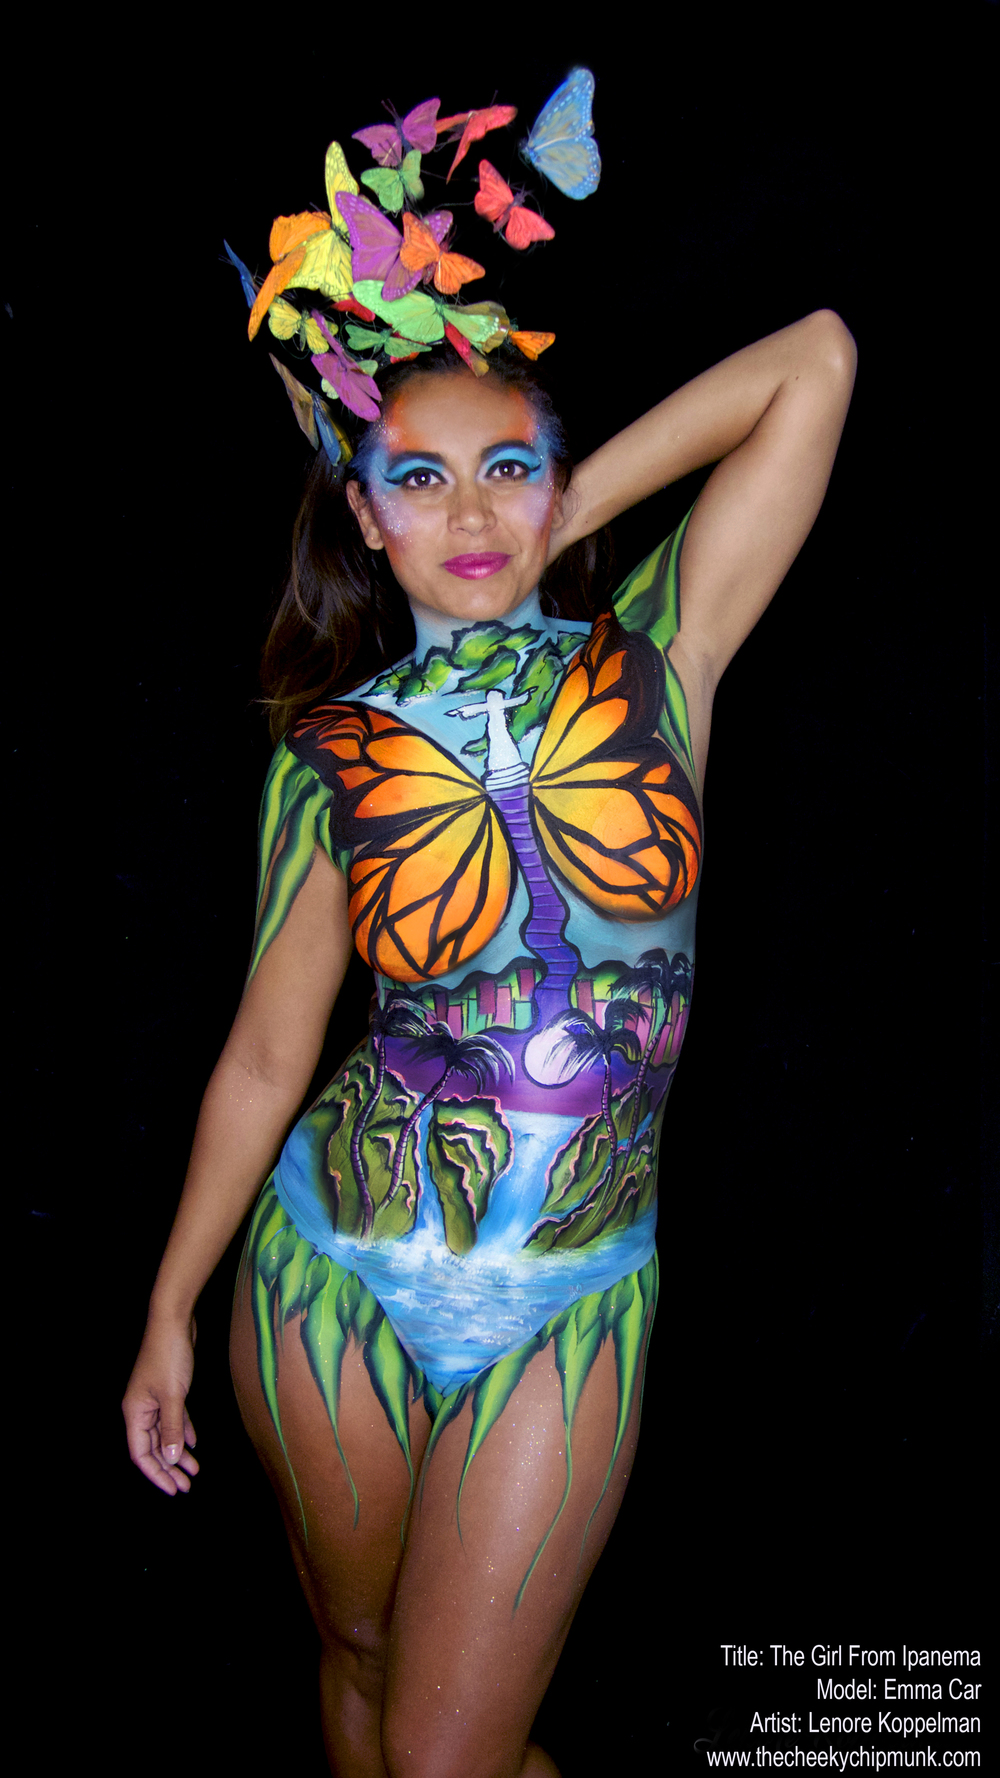 the girl from ipanema body painting emma car.jpg